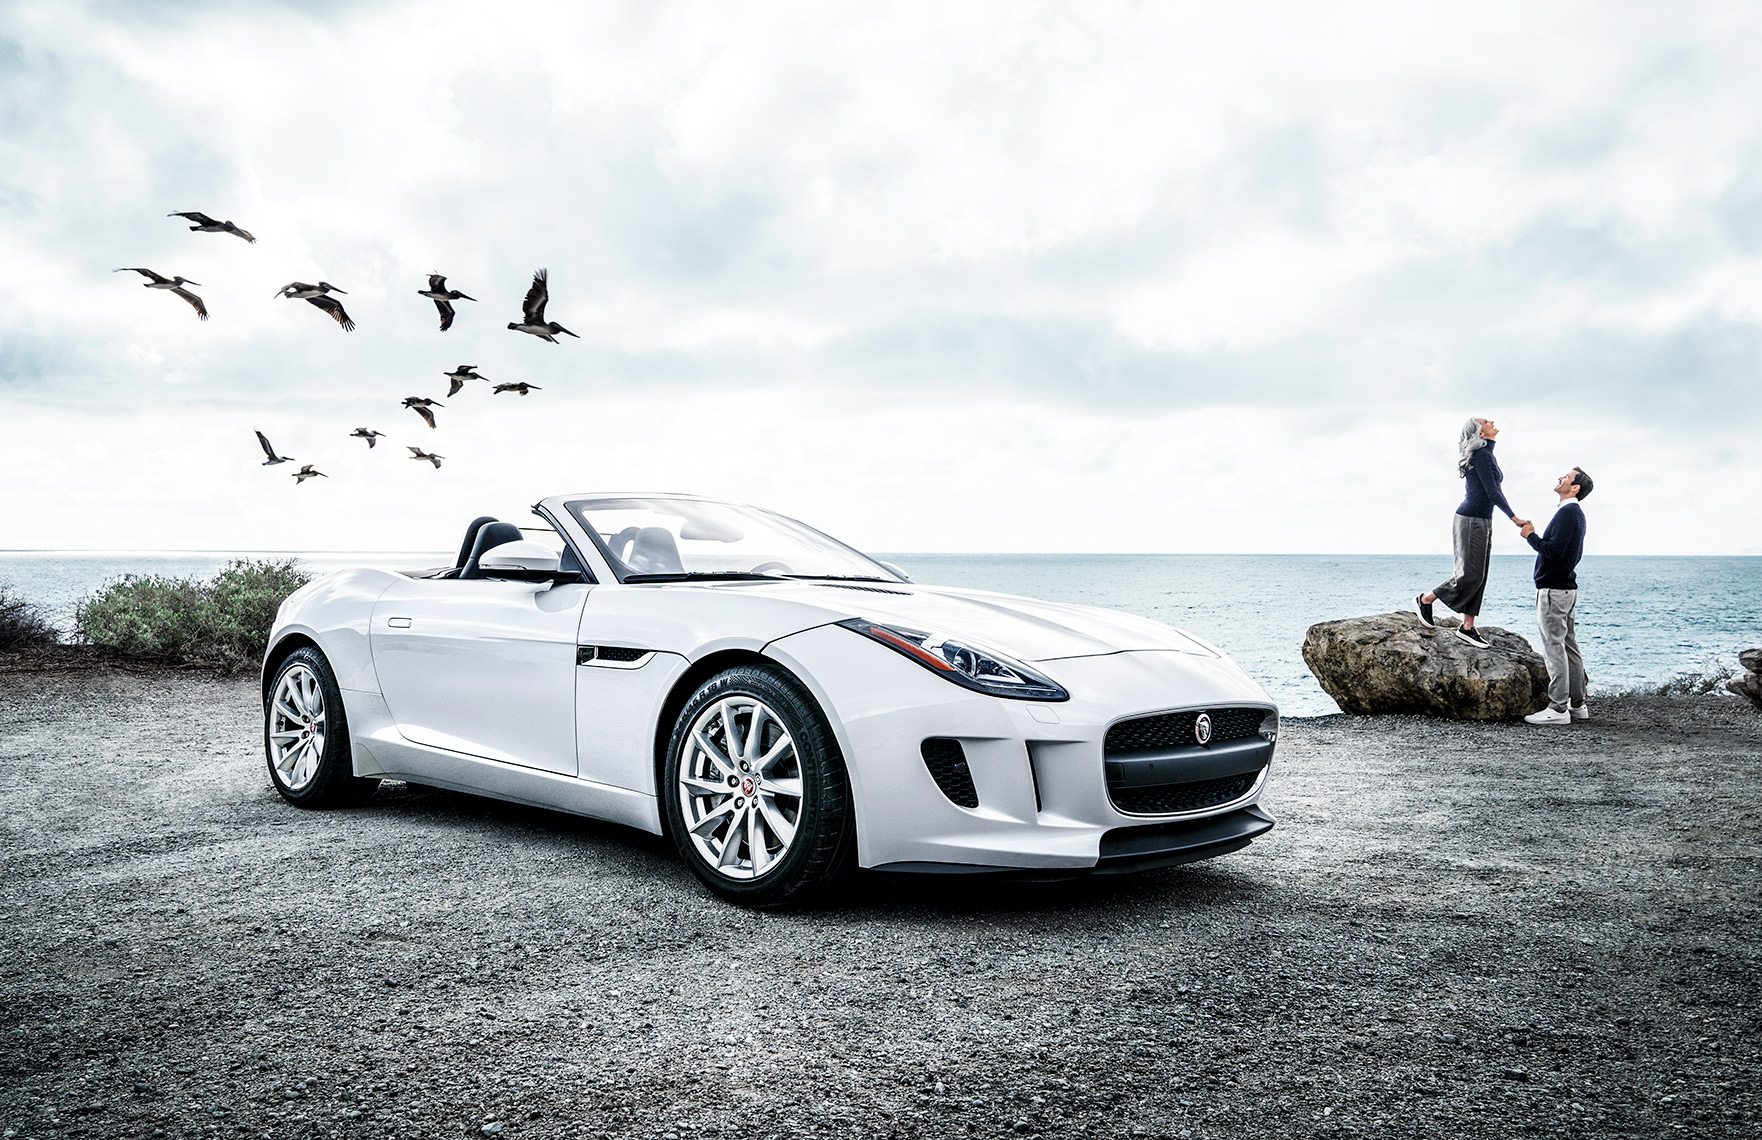 065_Jaguar_F-type_V6_17x11